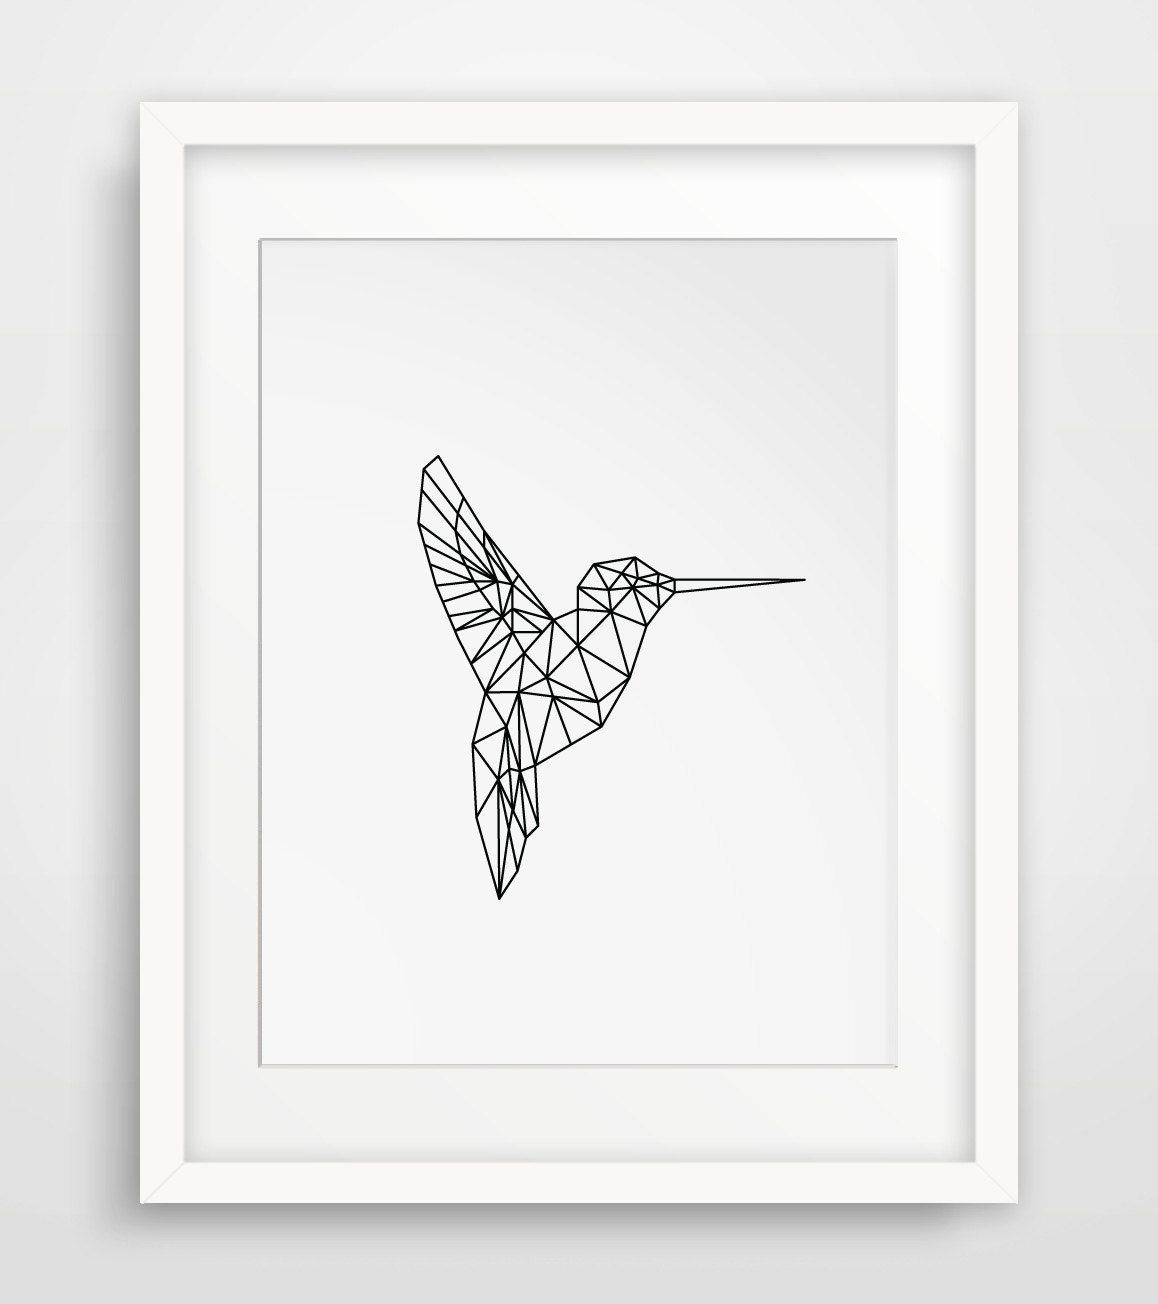 Hummingbird Most Popular Items Geometric Nursery Art Printable Nursery Prints Hummingbird